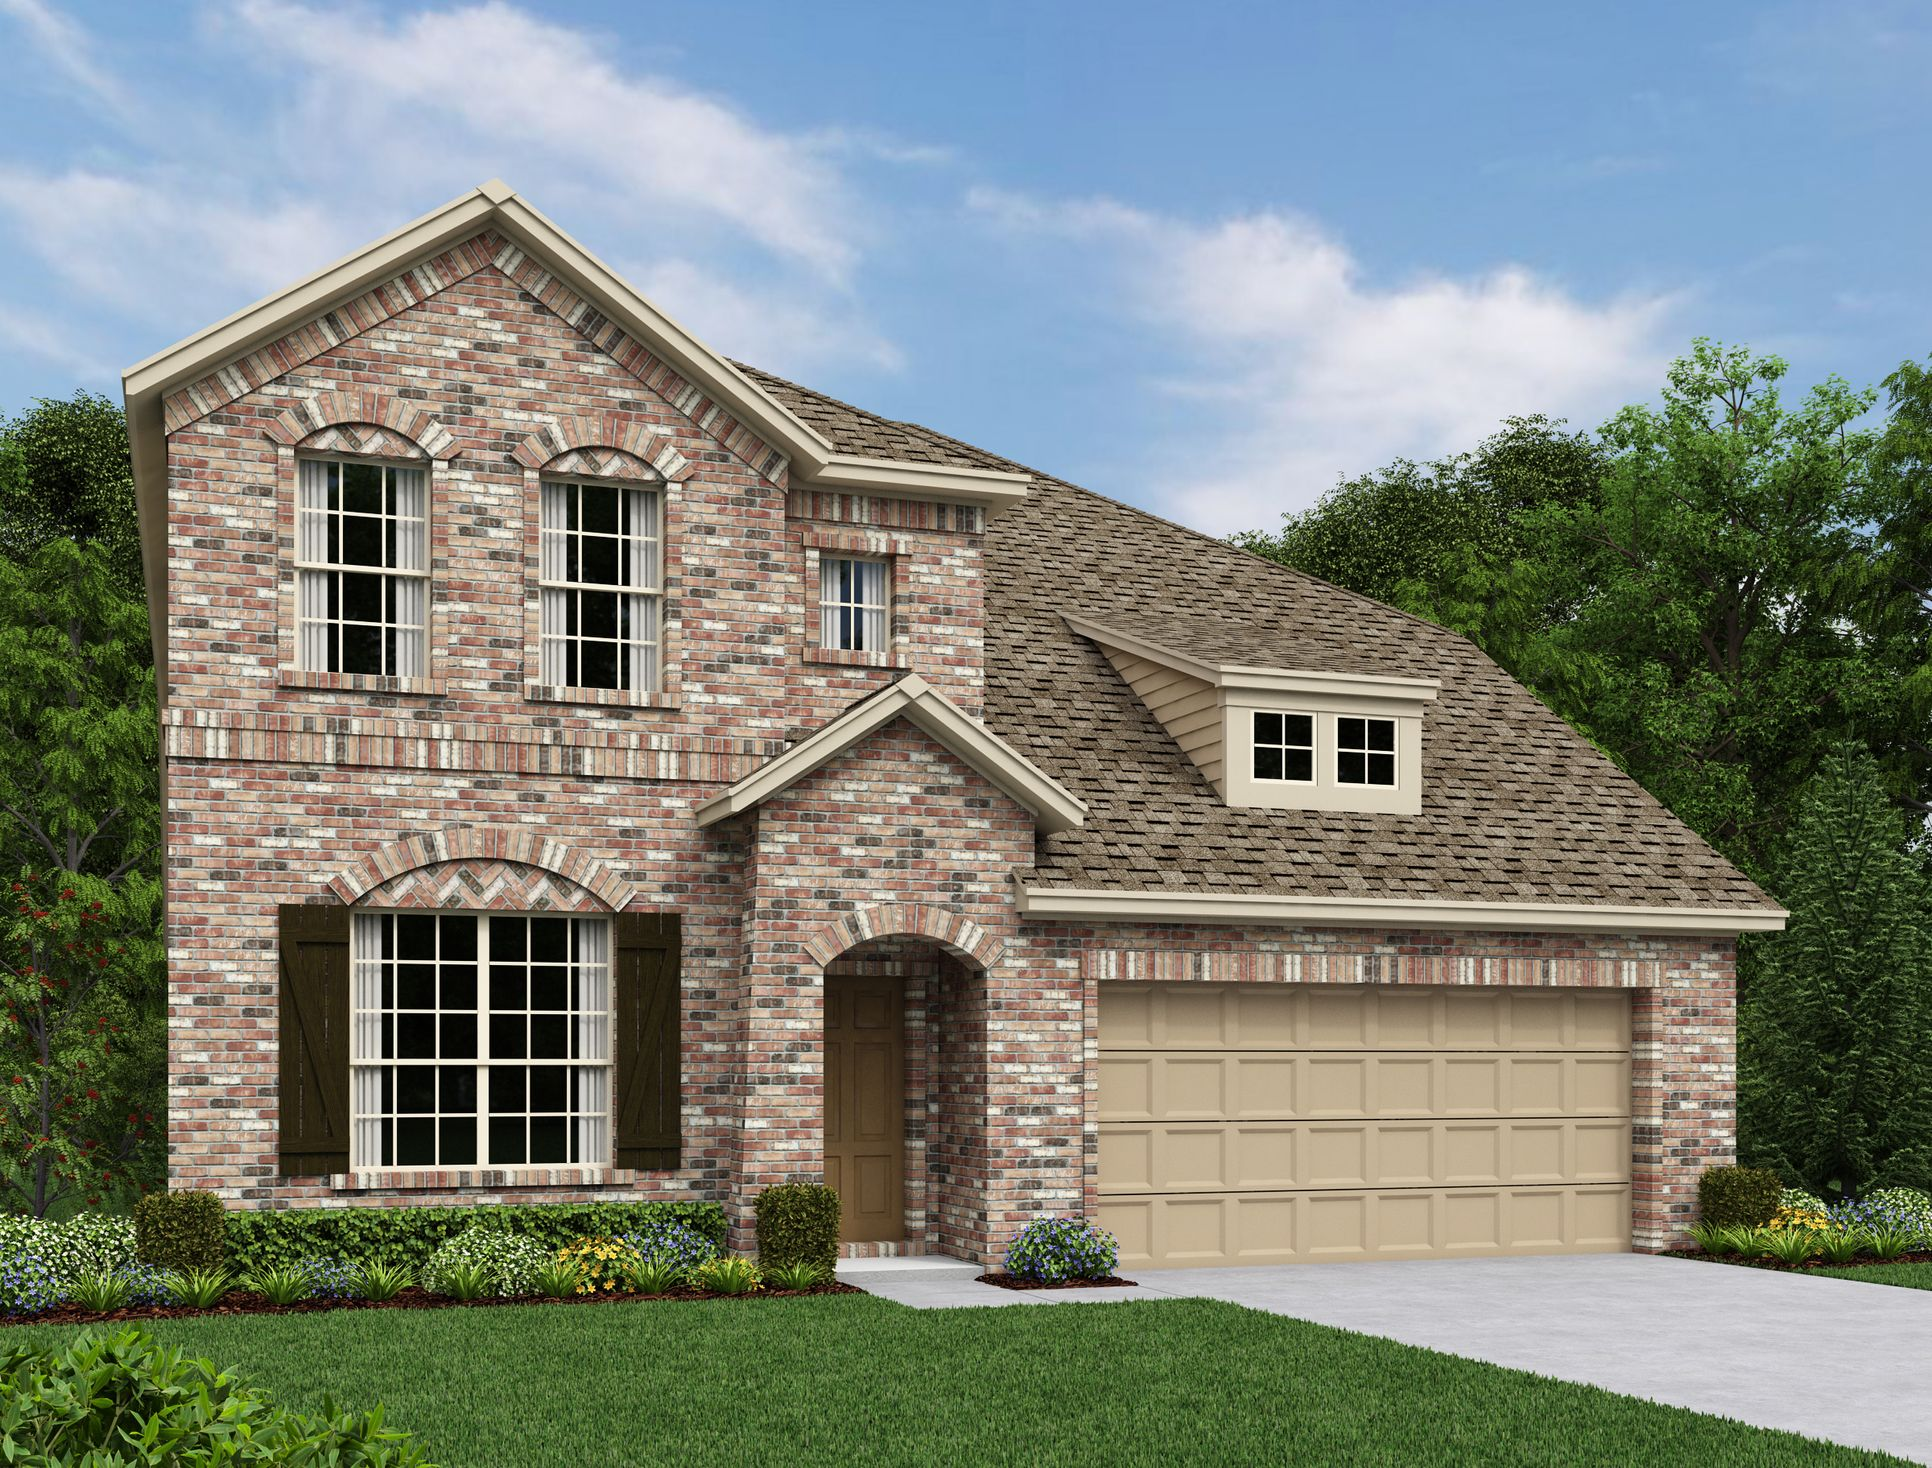 Exterior:Waterford Park - Katy Elevation Image 1